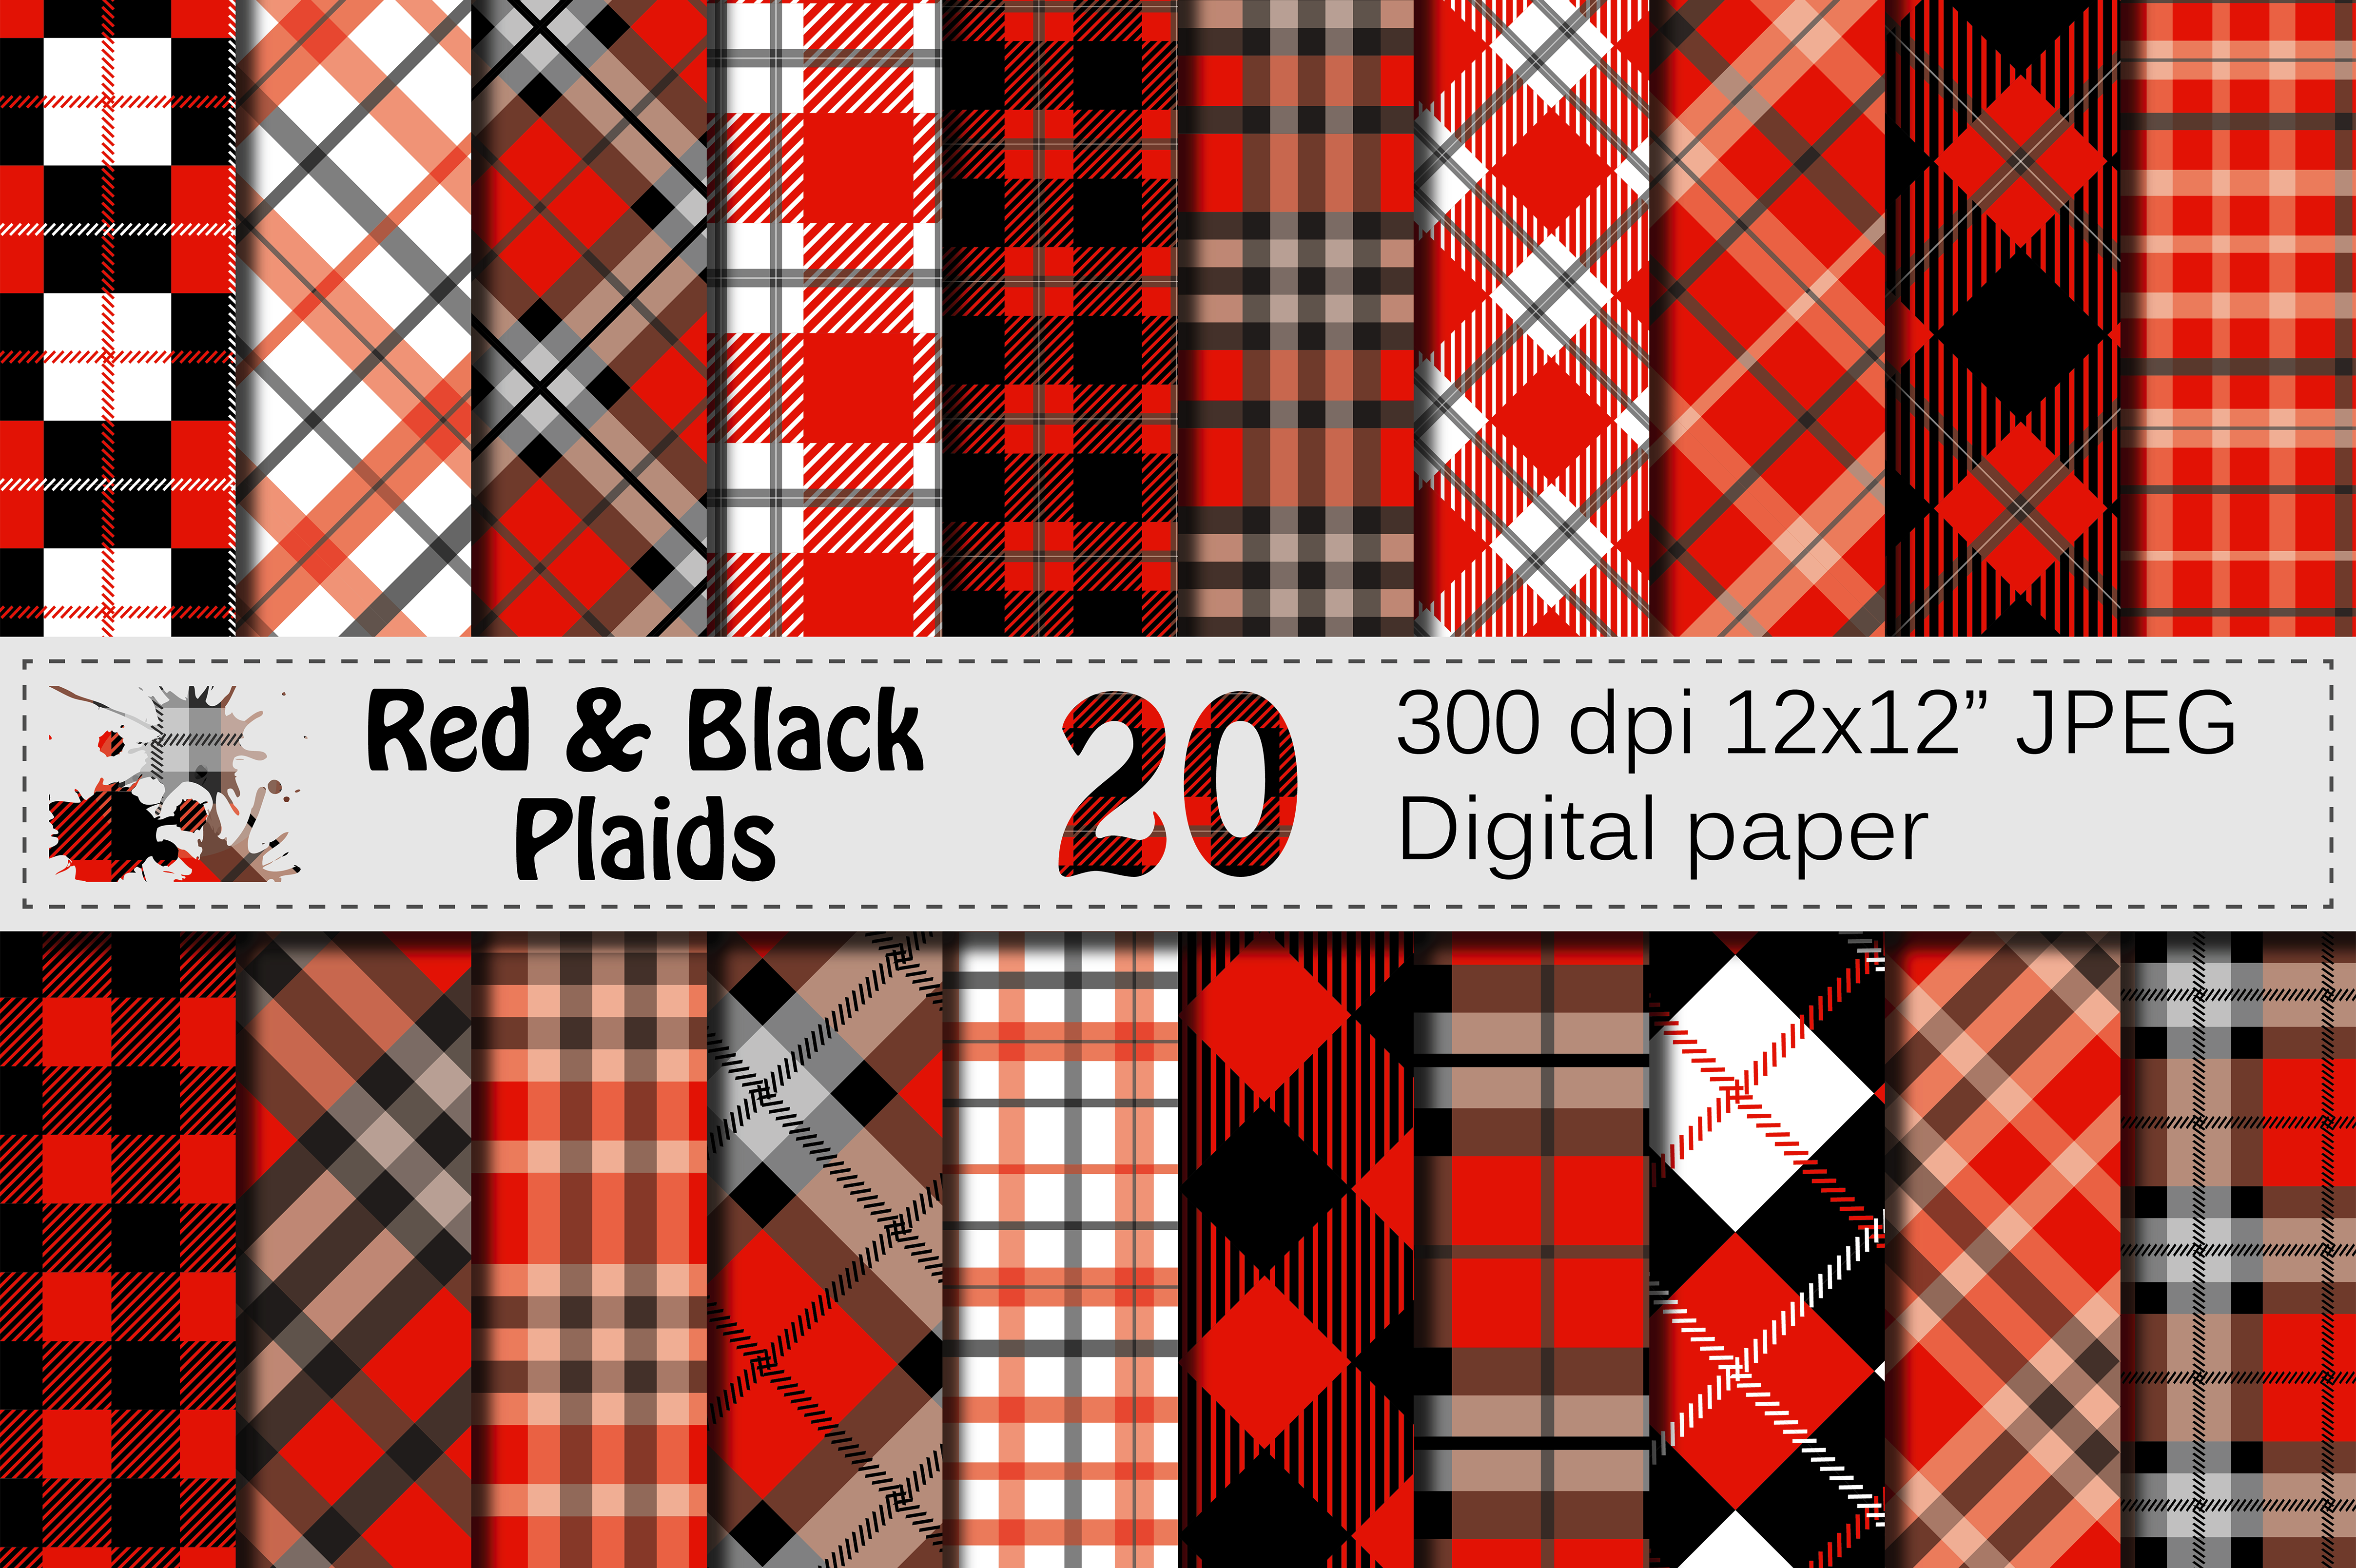 Black and Red Plaids Digital Paper Pack Graphic Backgrounds By VR Digital Design